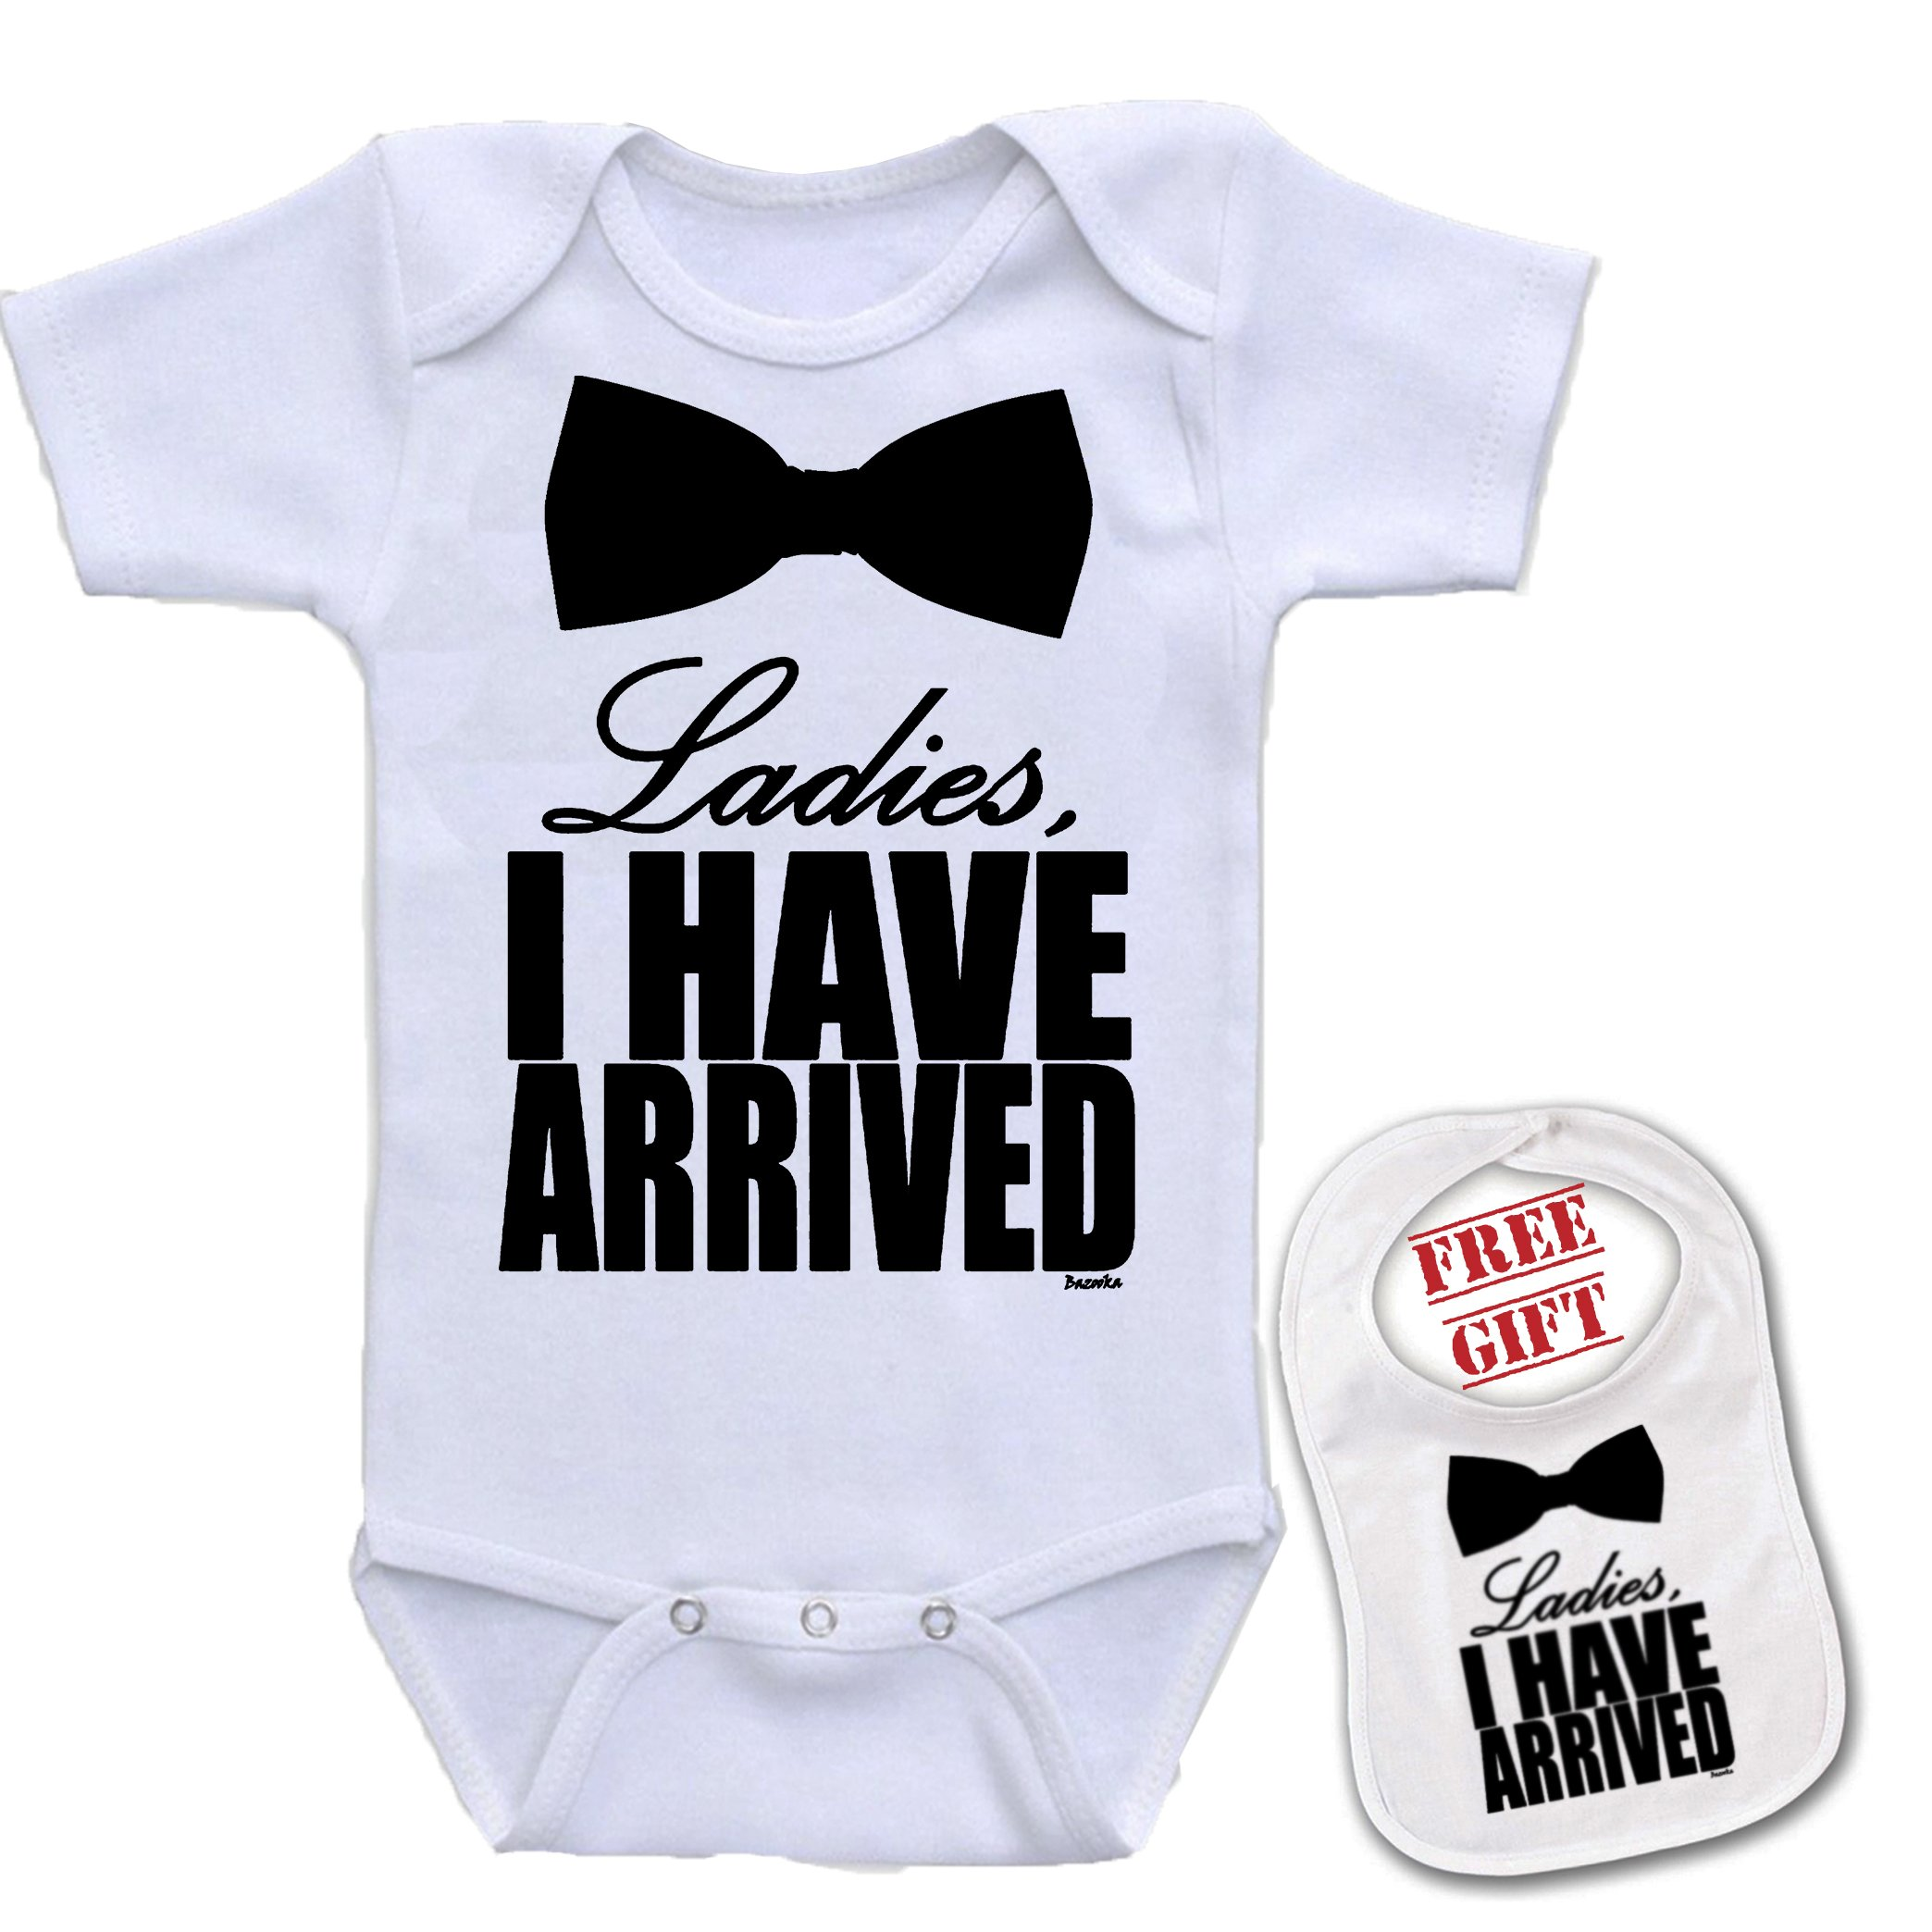 7f3746c9555 Newborn Baby Boys Girls Bowtie Short Sleeve Romper Bodysuit Playsuit Outfits  Apparel